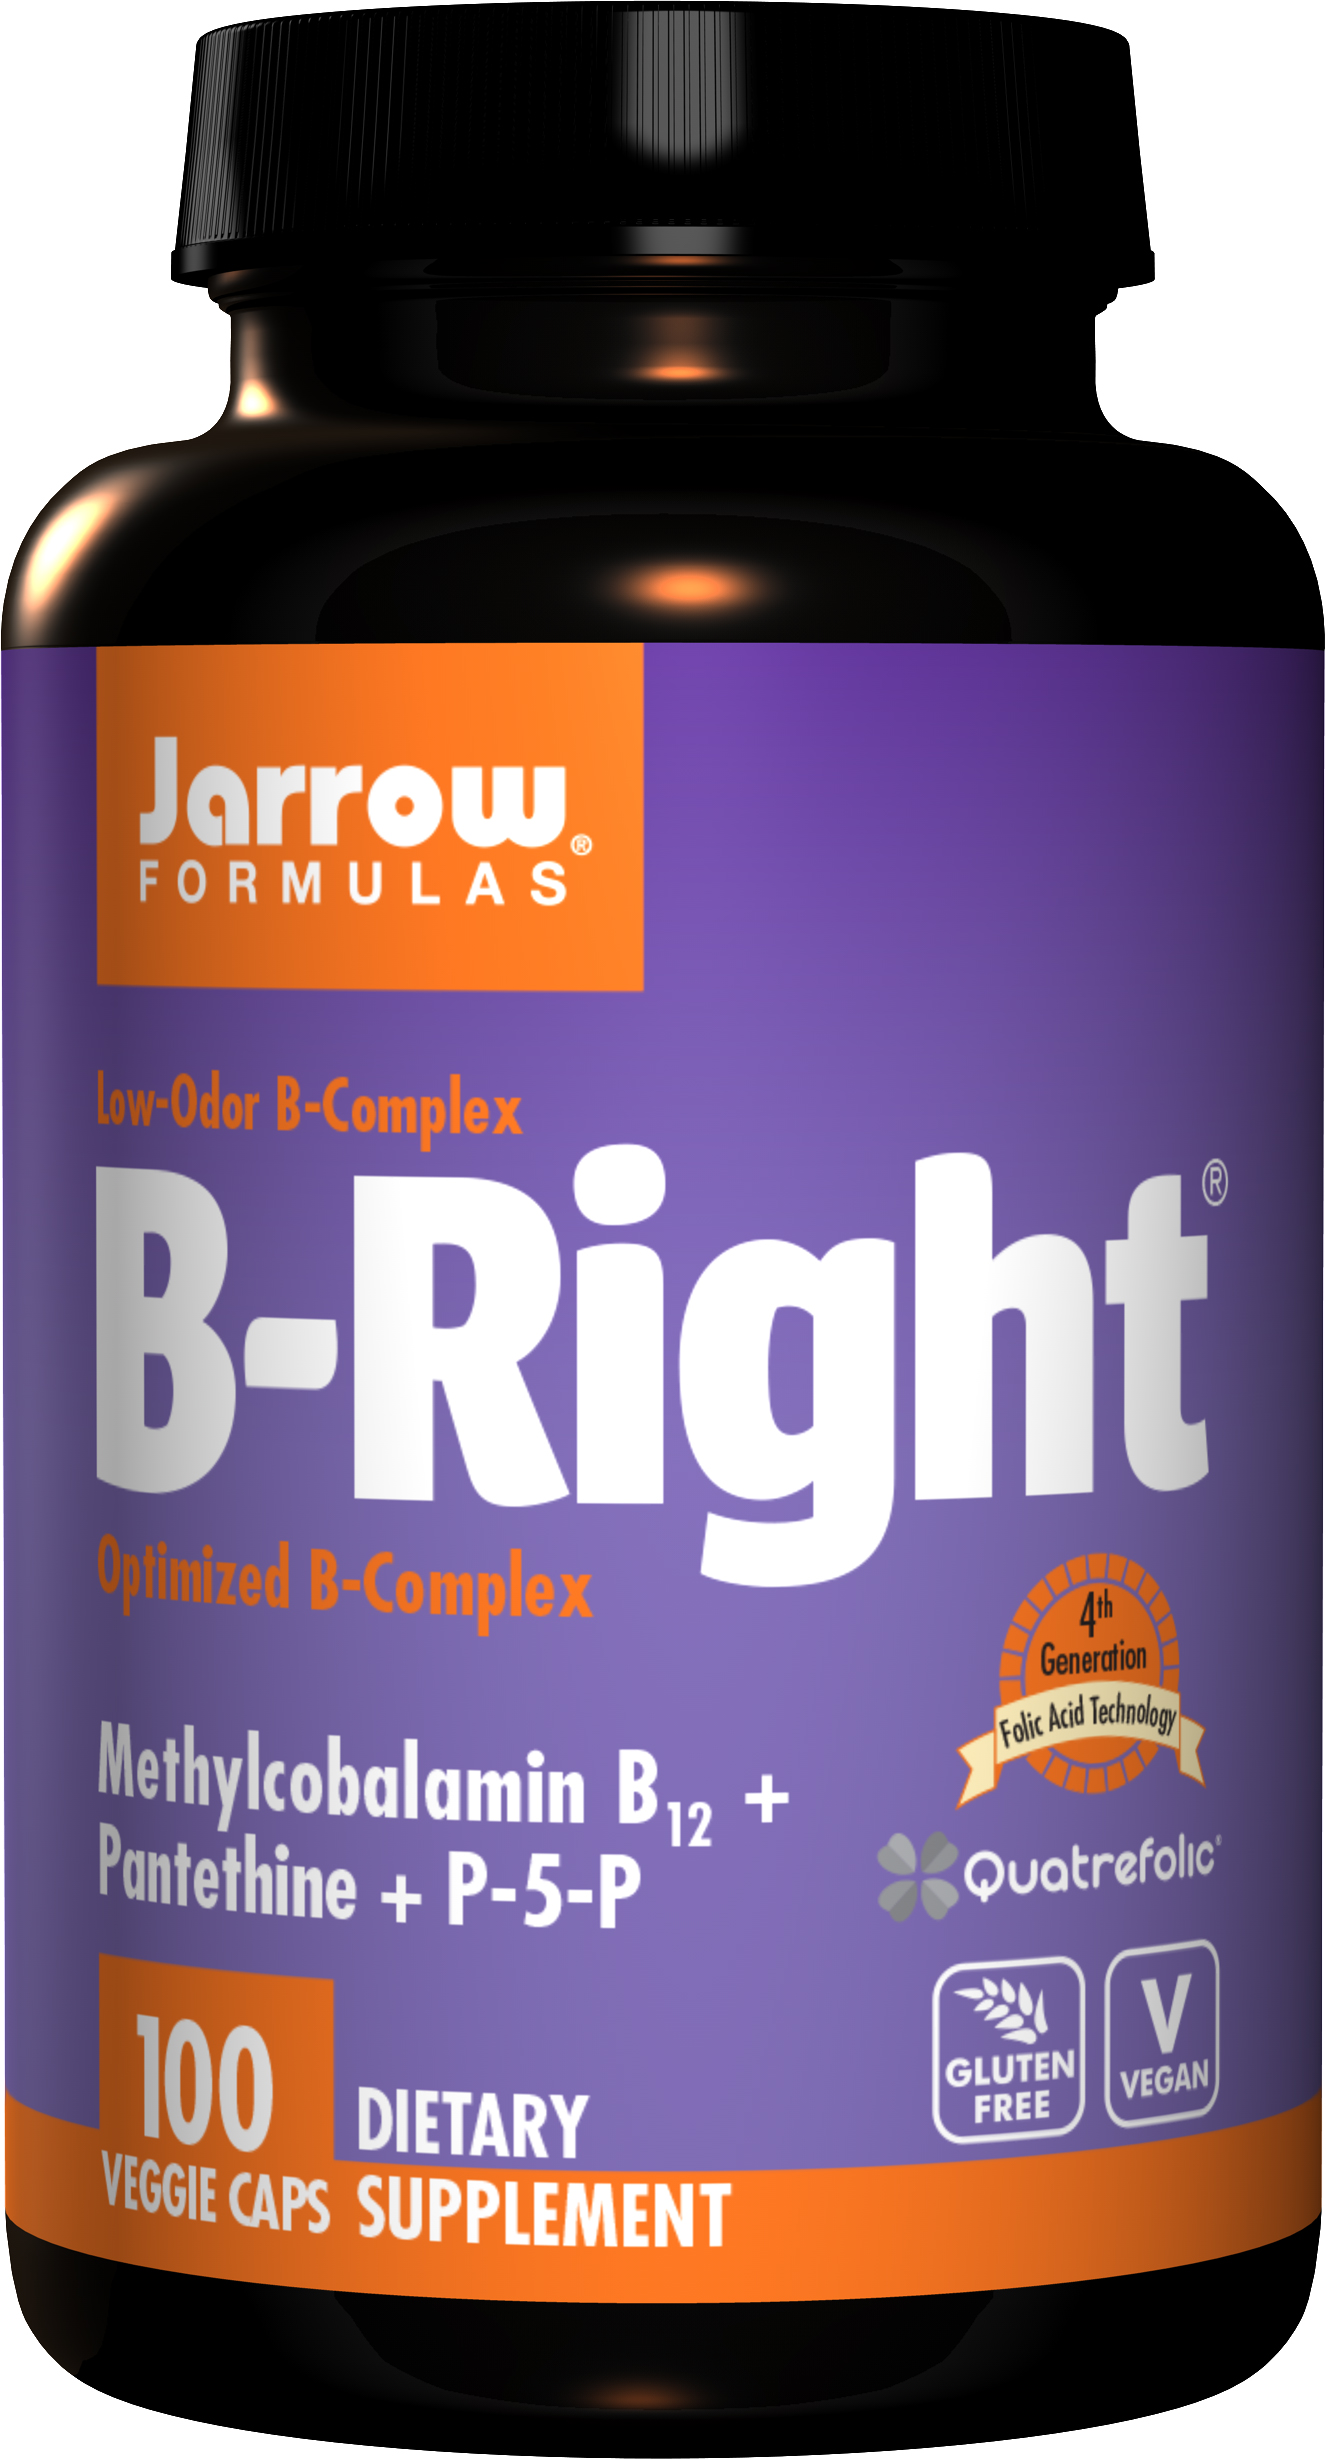 Jarrow B-Right, Vitamin B komplex, 100 rostlinných kapslí